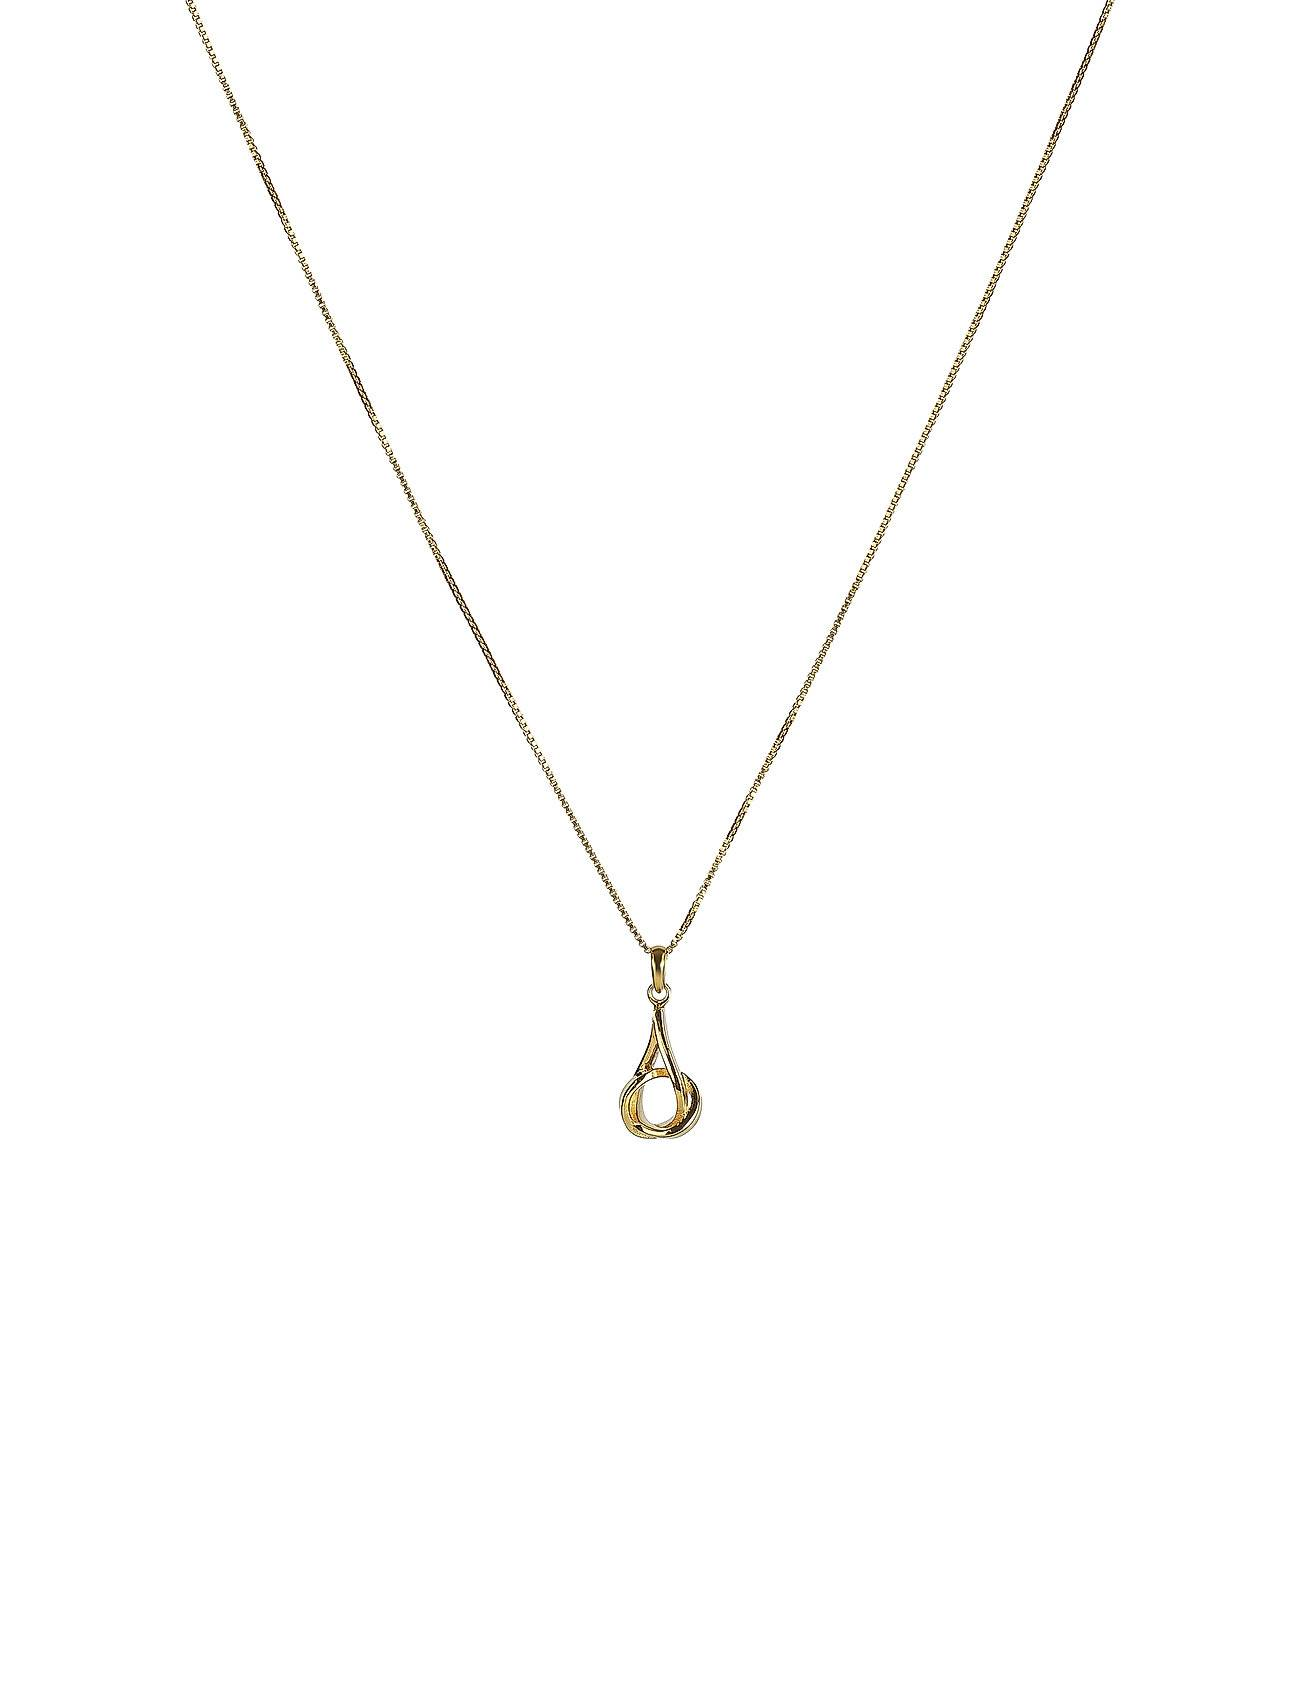 Syster P Tied Necklace Gold Accessories Jewellery Necklaces Dainty Necklaces Kulta Syster P